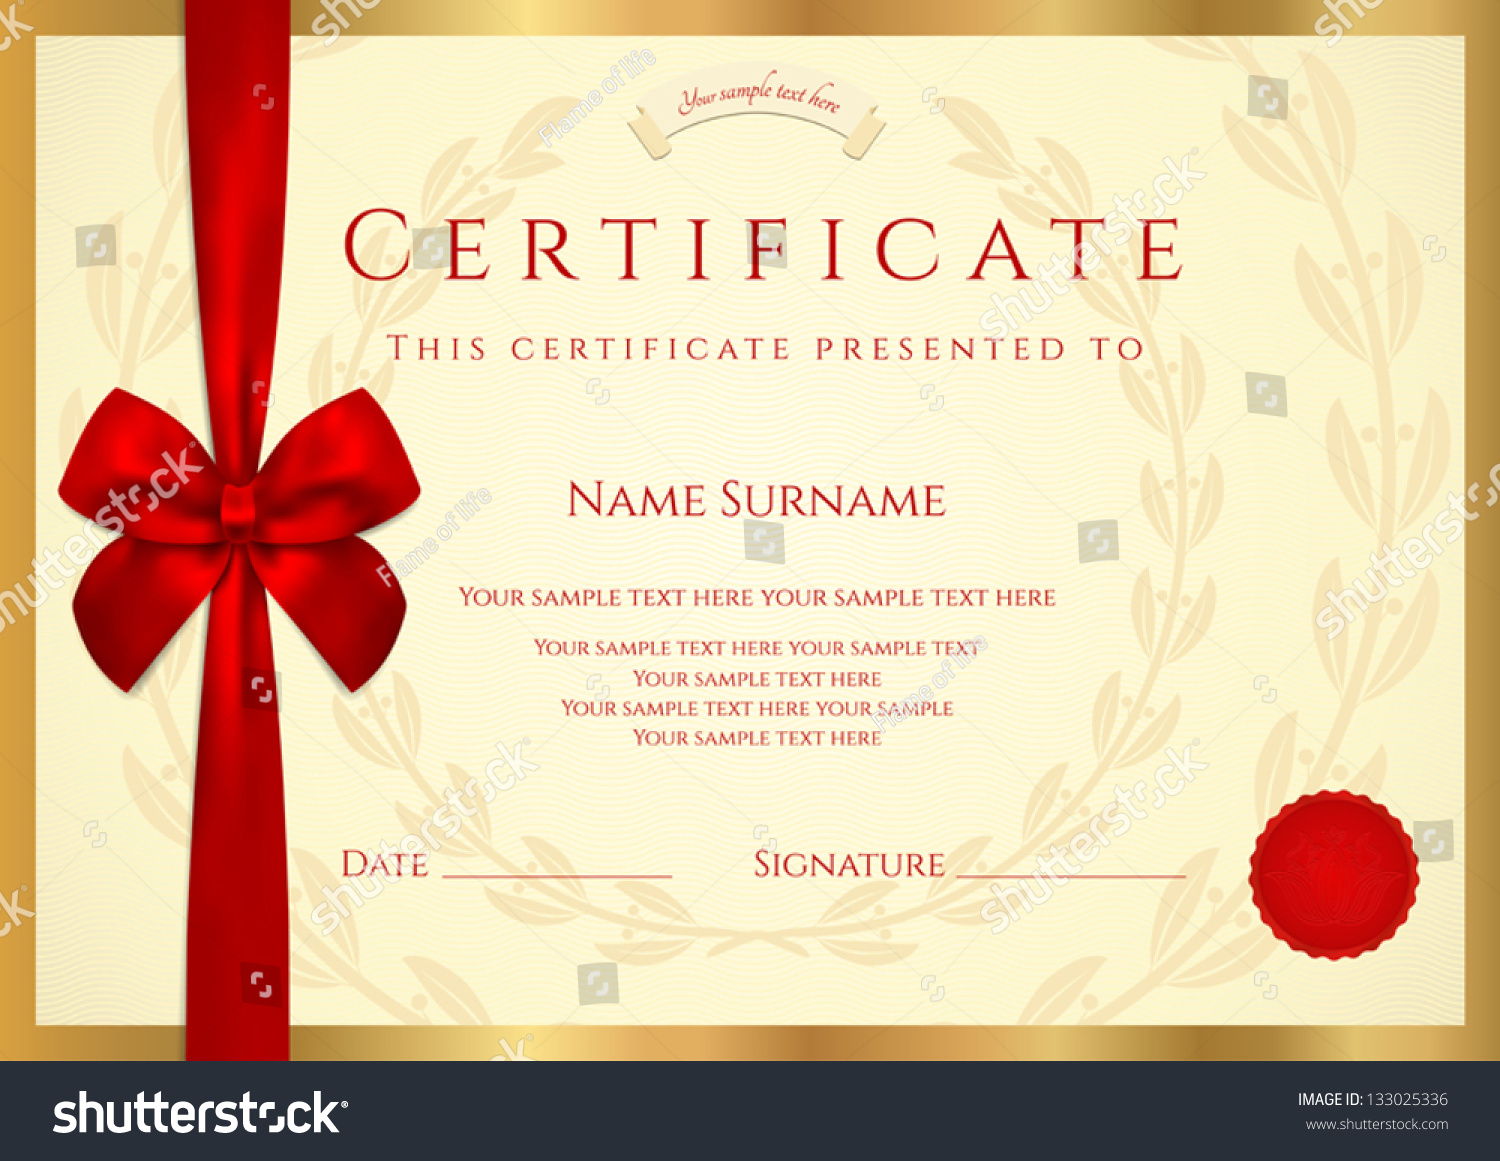 Royalty free certificate of completion template 133025336 certificate of completion template with wax seal border and red bow ribbon xflitez Gallery